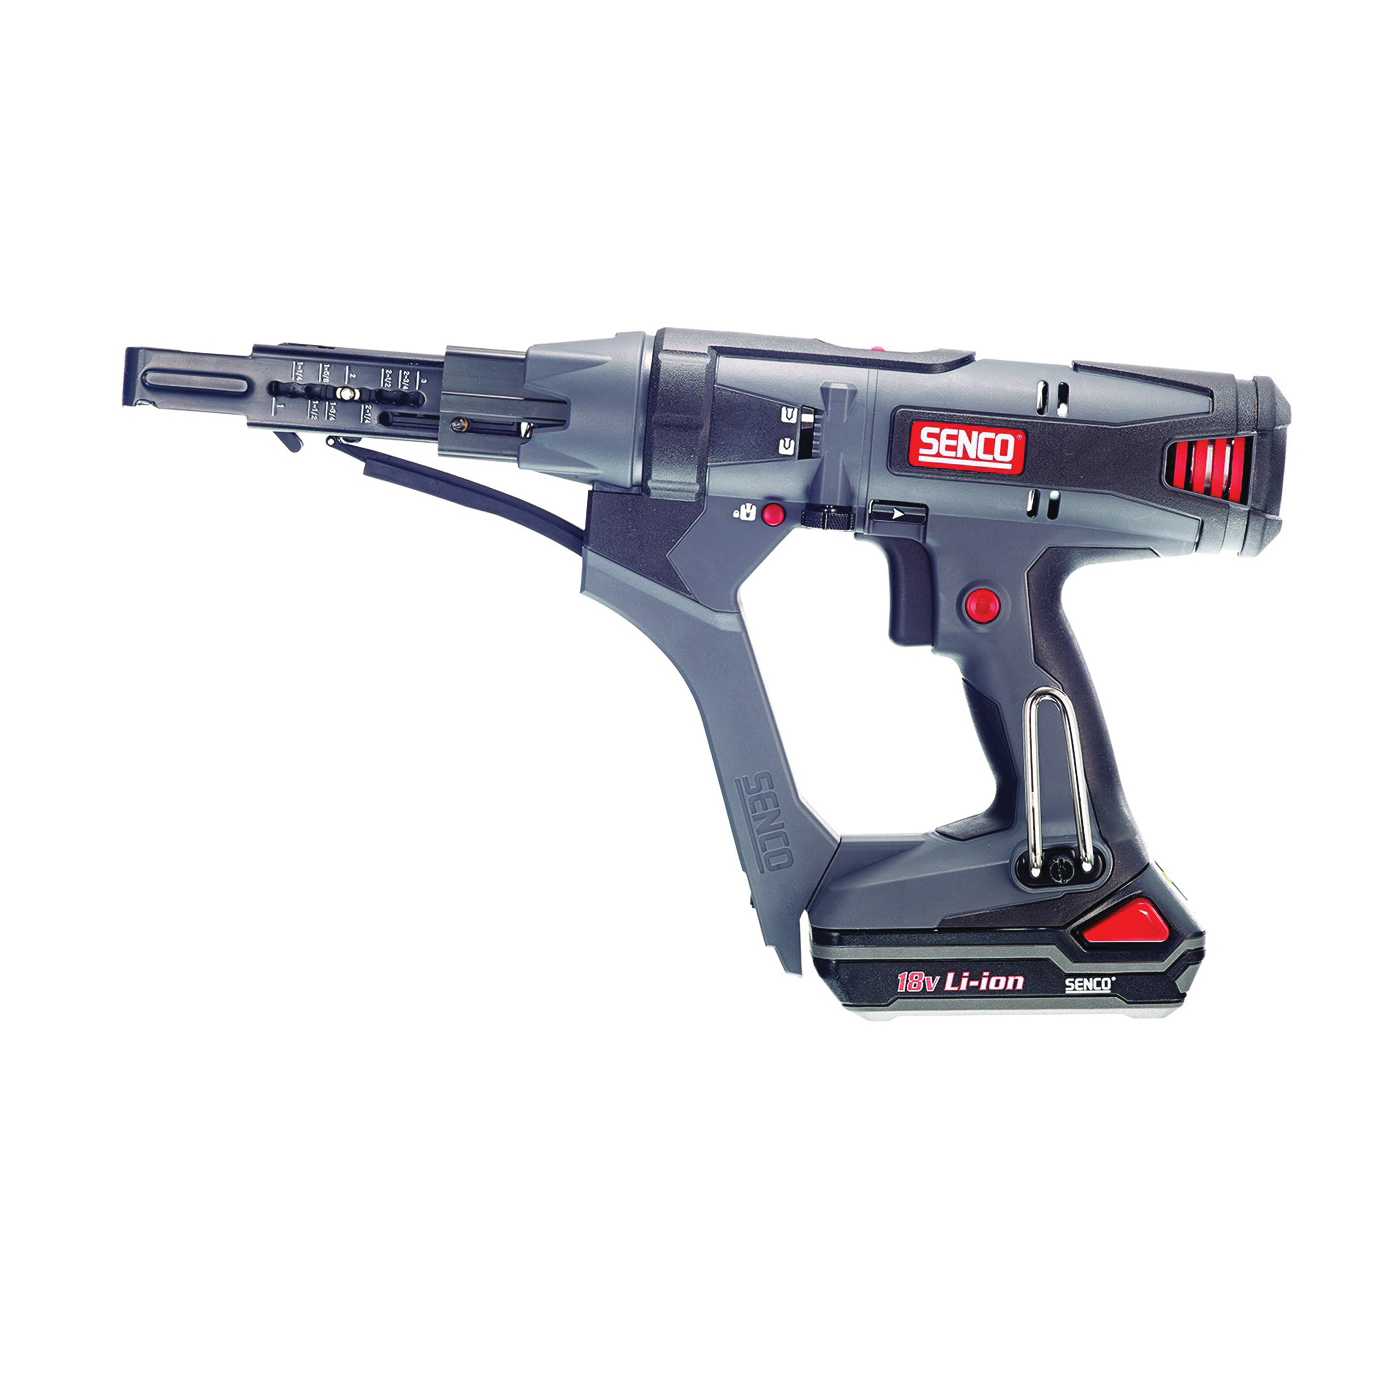 Picture of SENCO 7Y0001N Collated Screwdriver, Kit, 18 V Battery, 1.5 Ah, 1/4 in Chuck, Hexagonal Chuck, 2500 rpm Speed